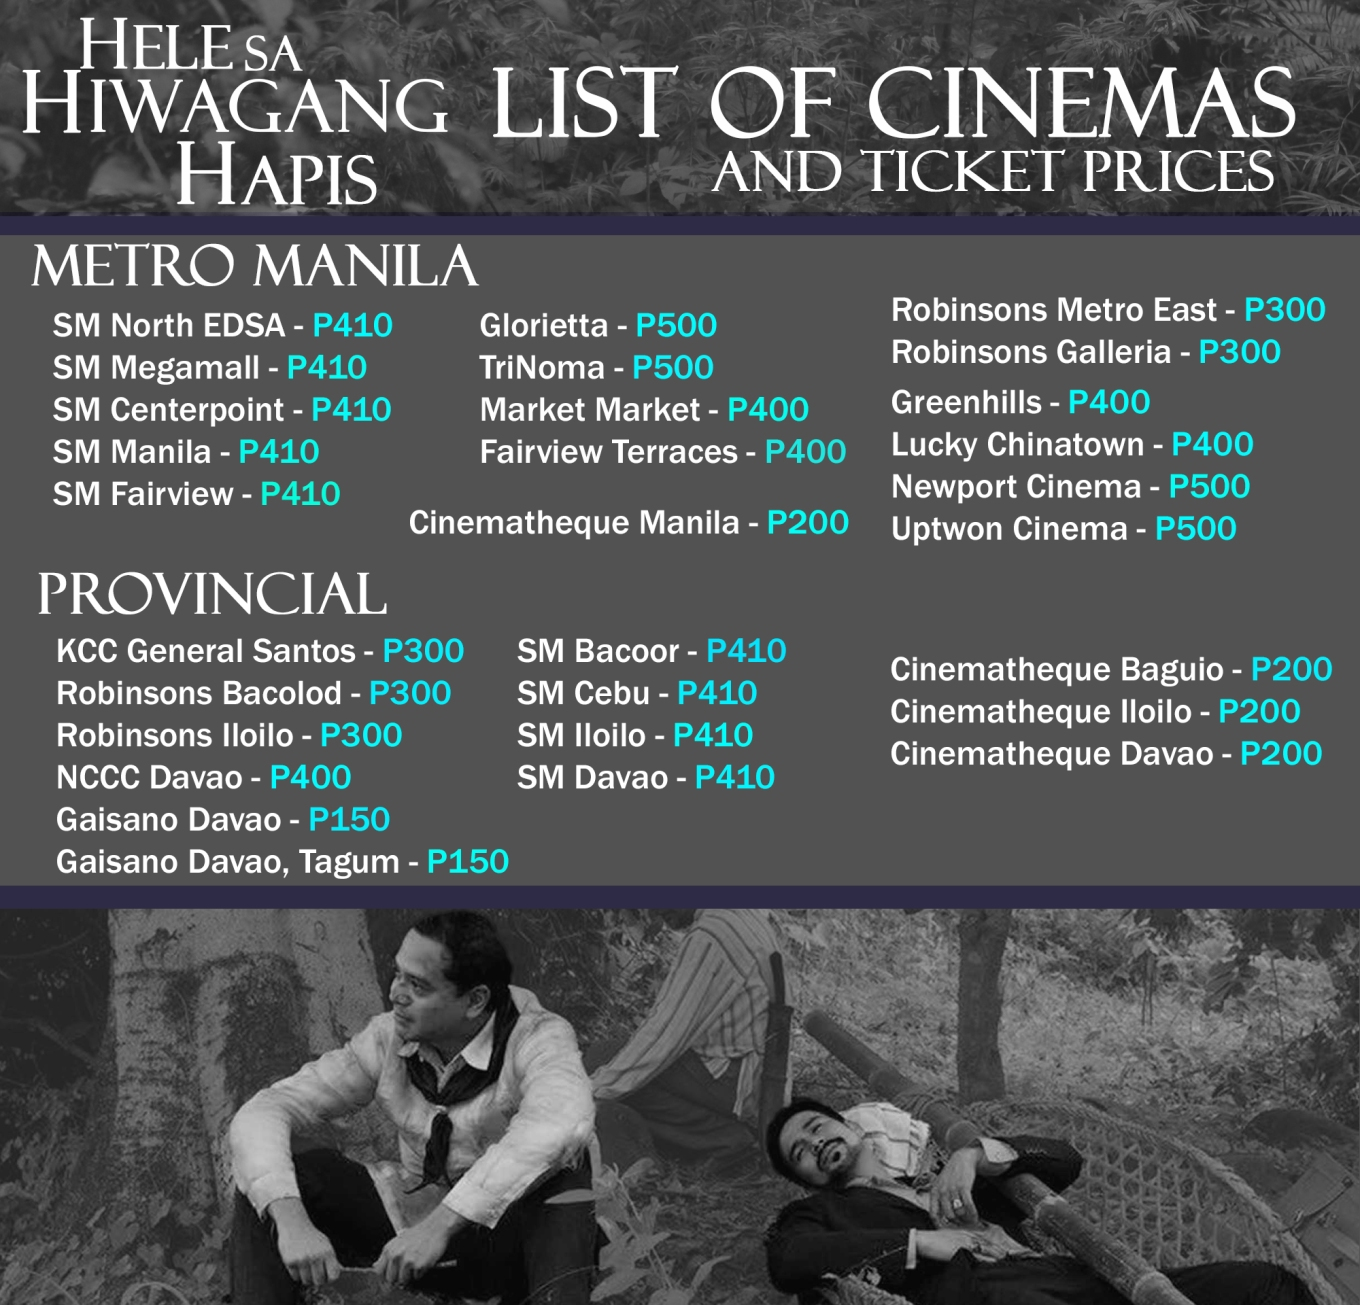 Hele Cinema List